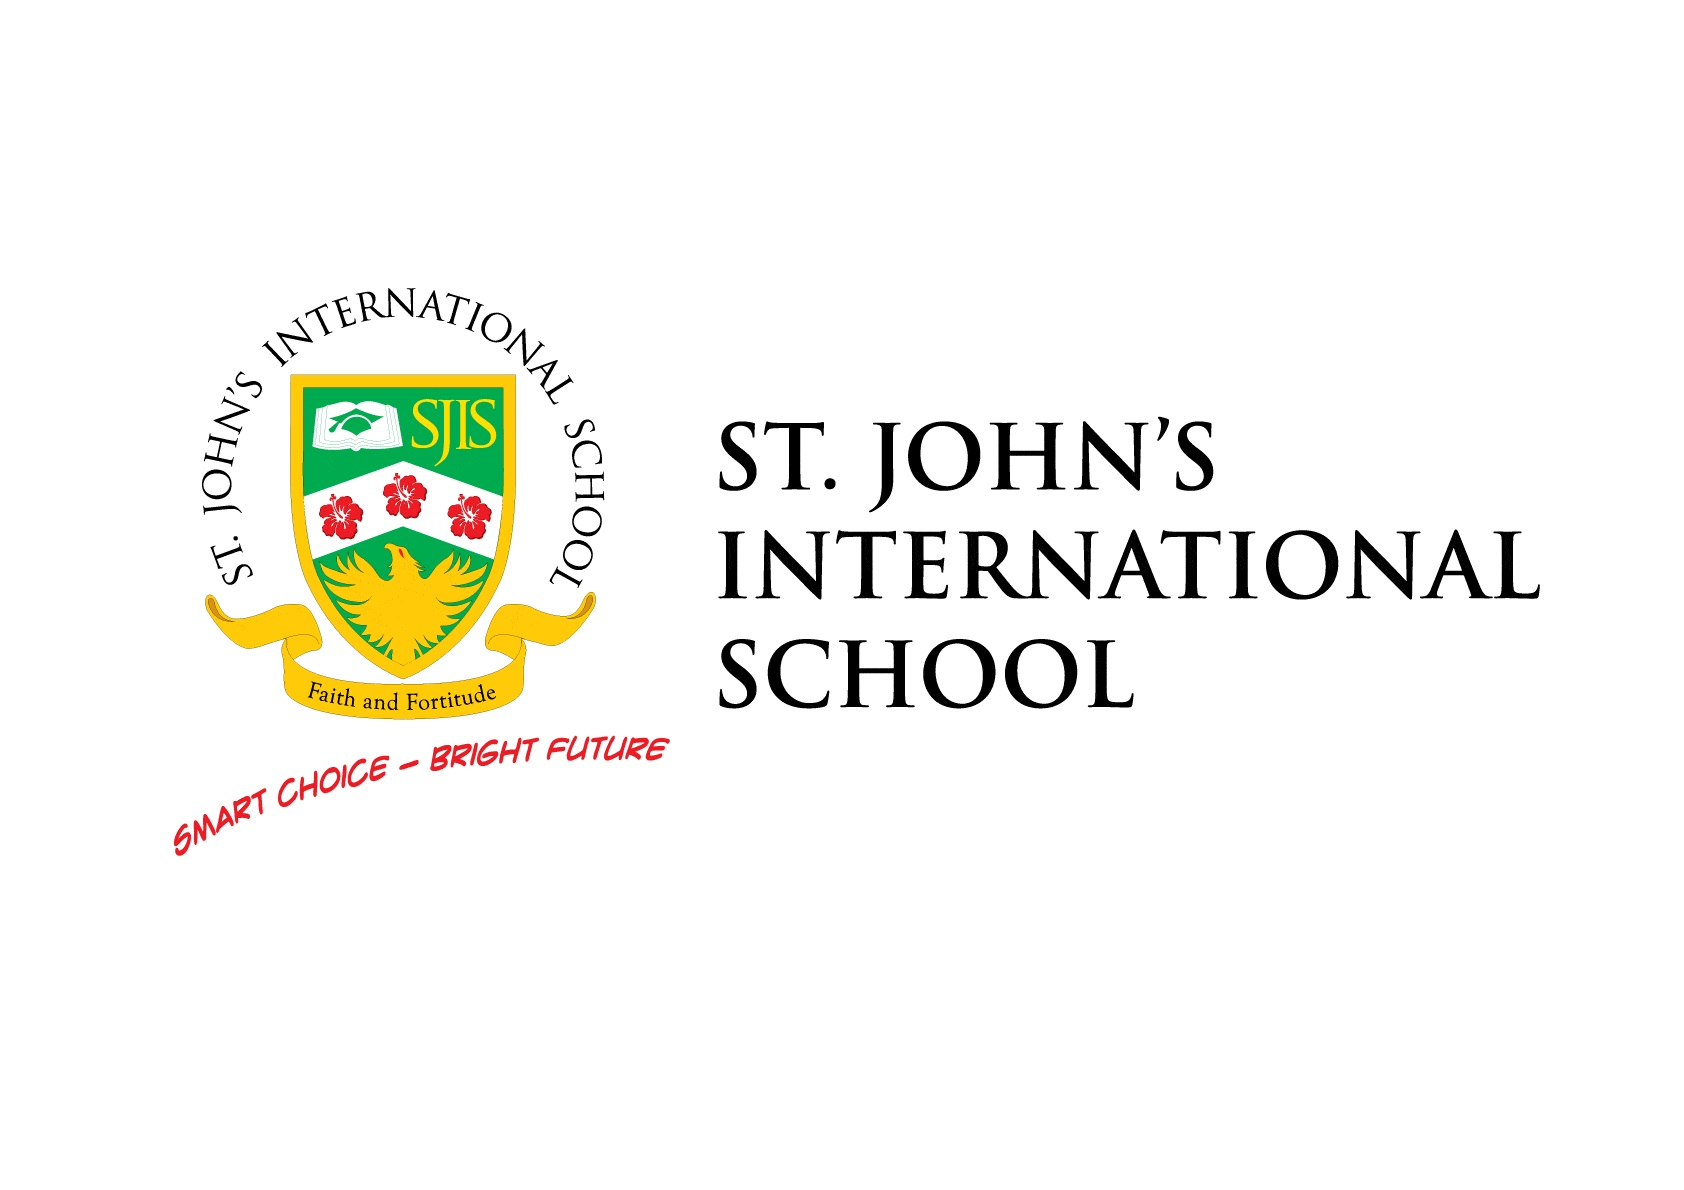 St. John's International School